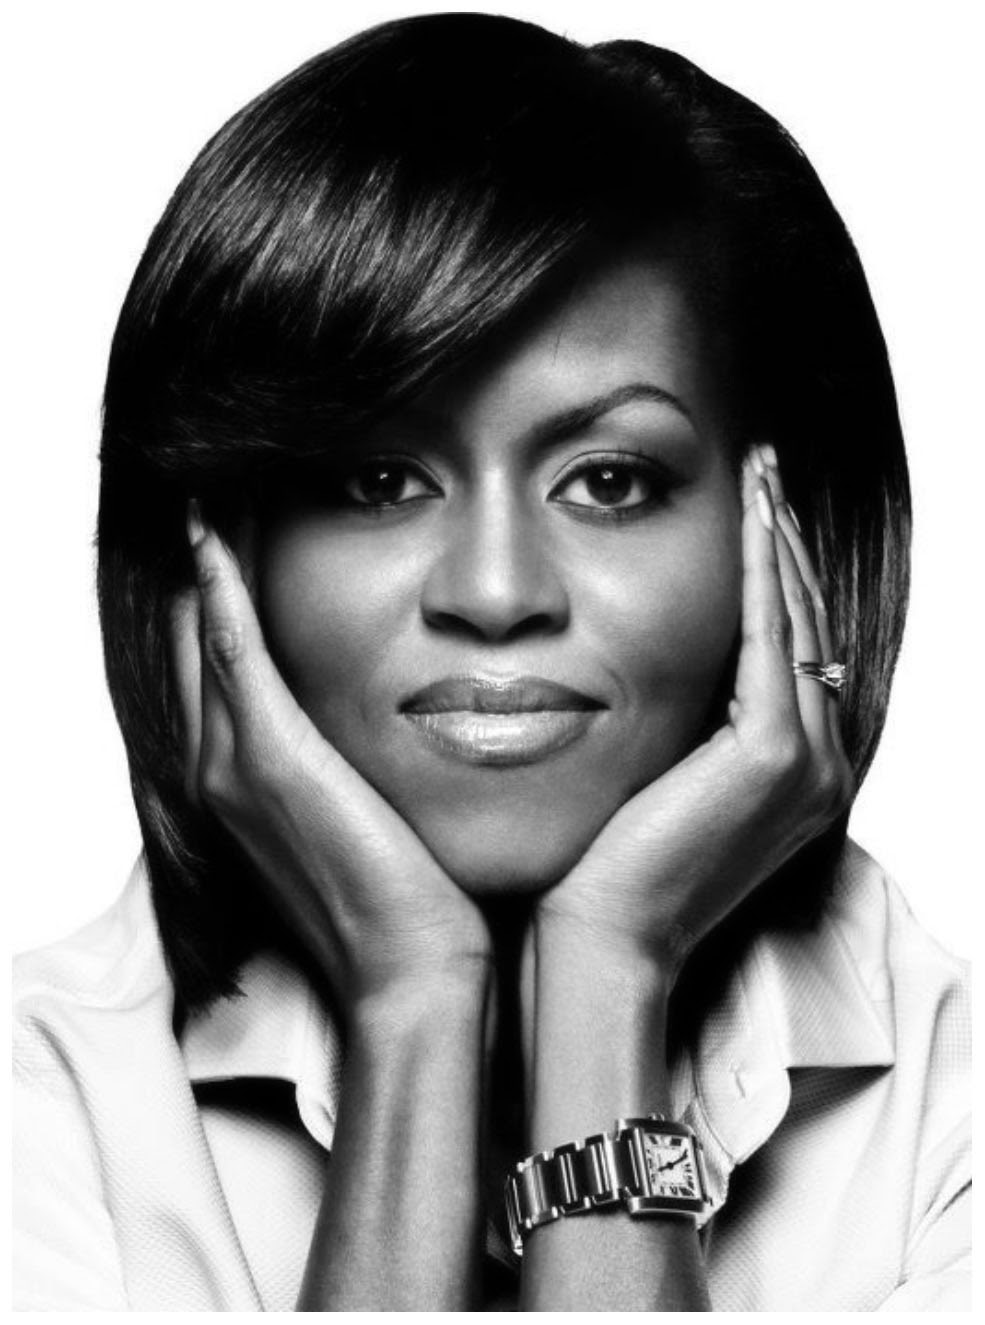 Michelle Obama was brought up in Chicago